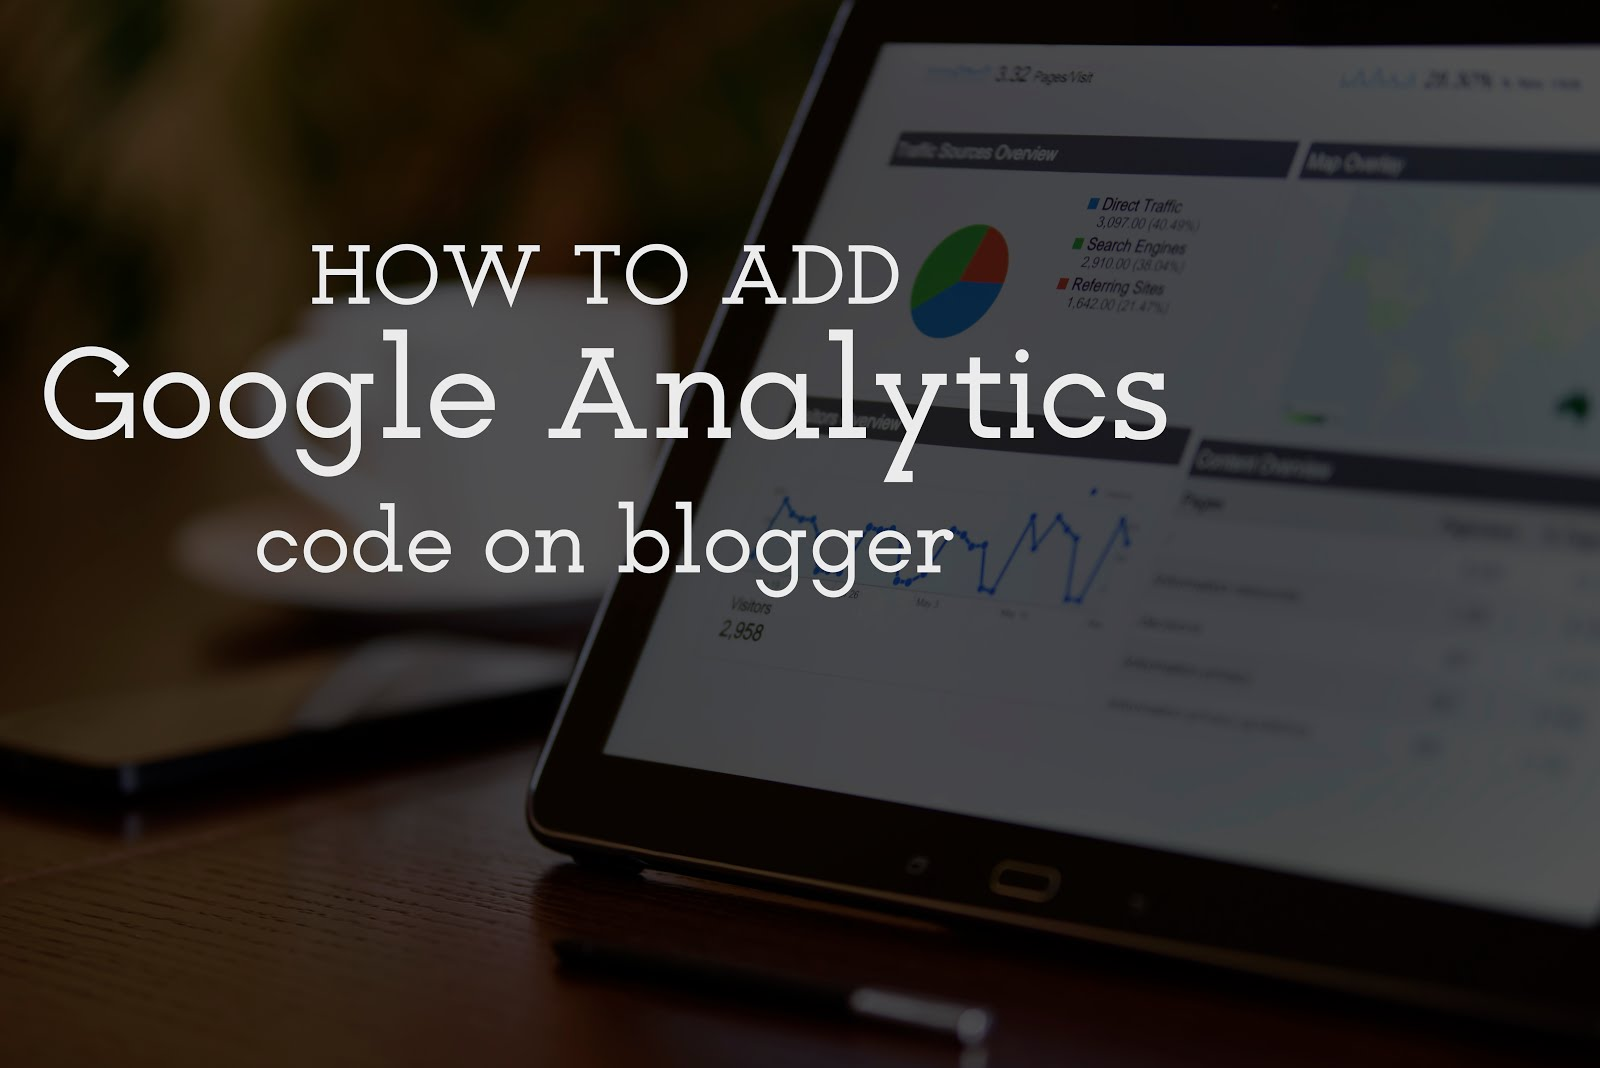 How to add Google Analytics on Blogspot